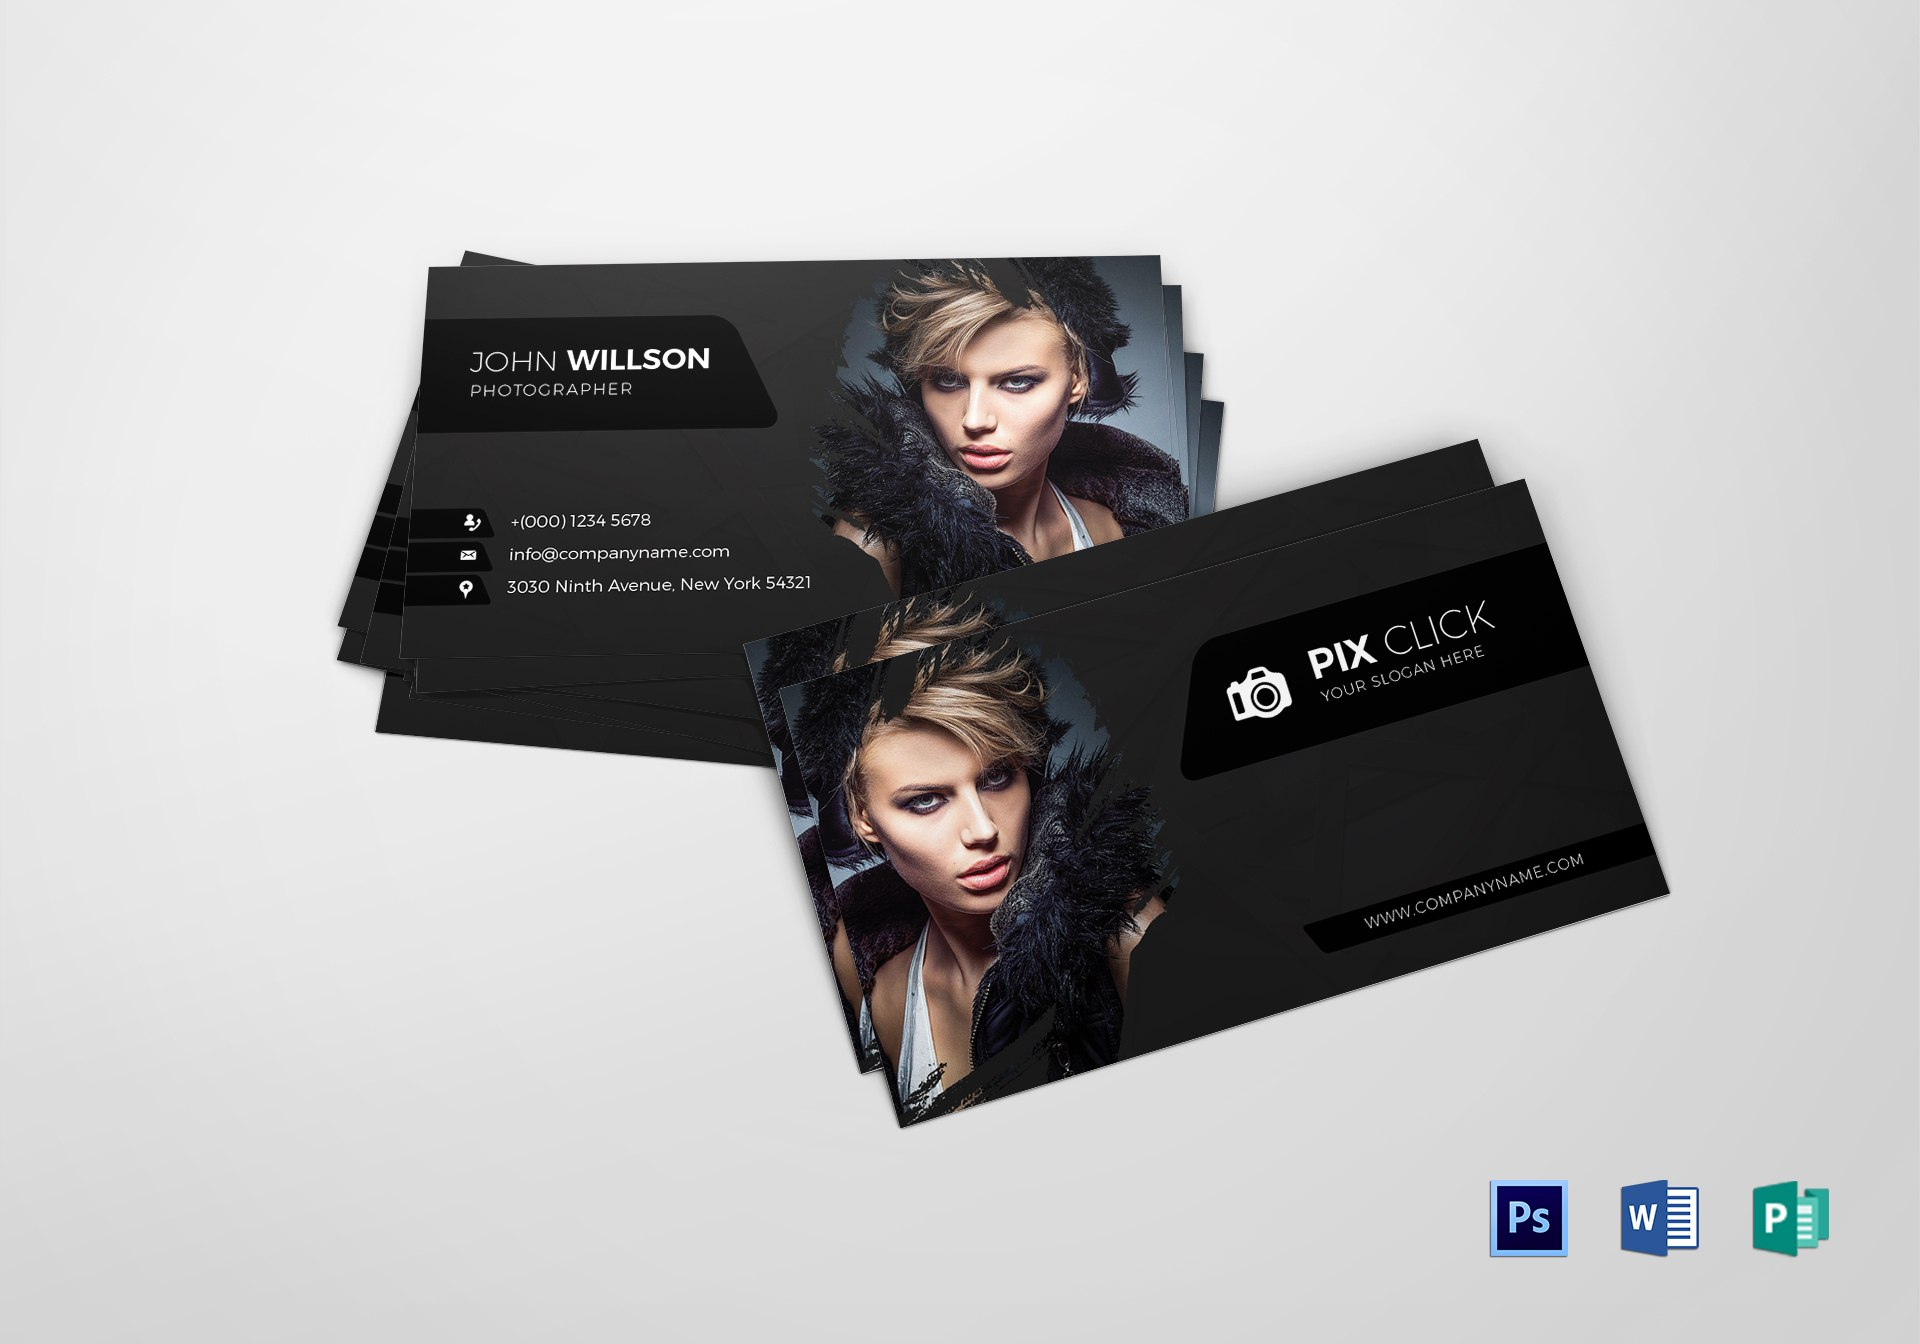 Photographer Business Card Design Template In Psd Word Publisher With Photography Business Card Template Photoshop